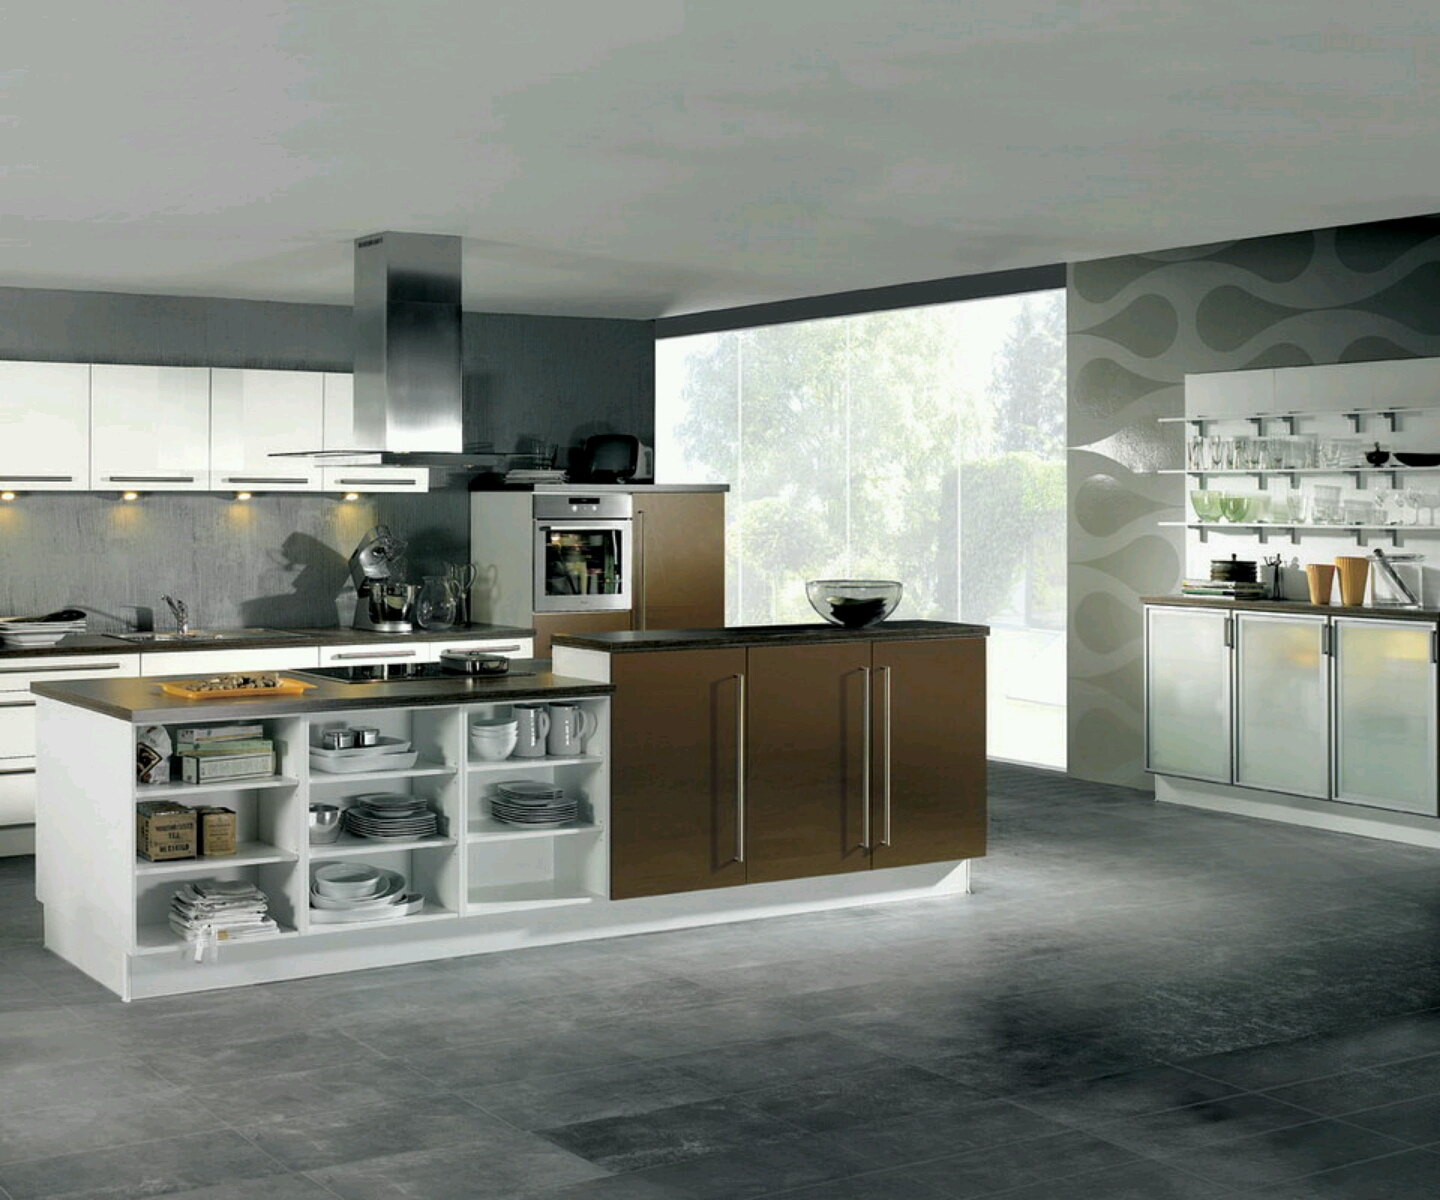 New home designs latest ultra modern kitchen designs ideas for What is new in kitchen design